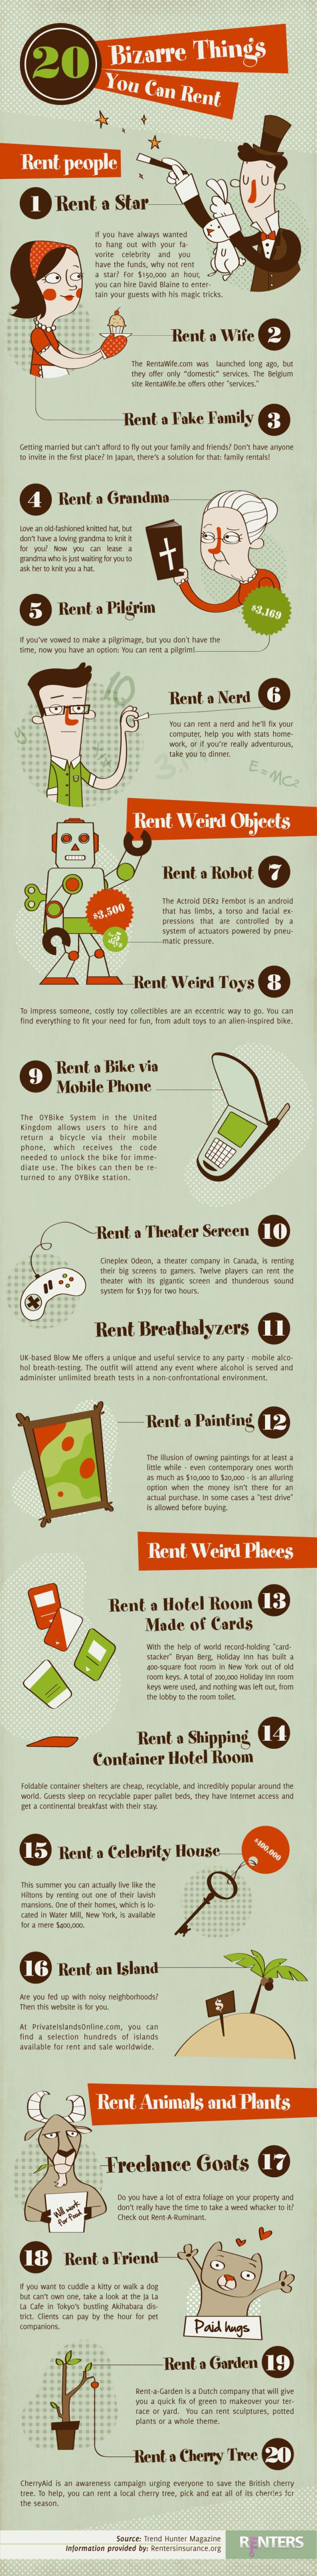 20 Bizarre Things You Can Rent (1 pic)